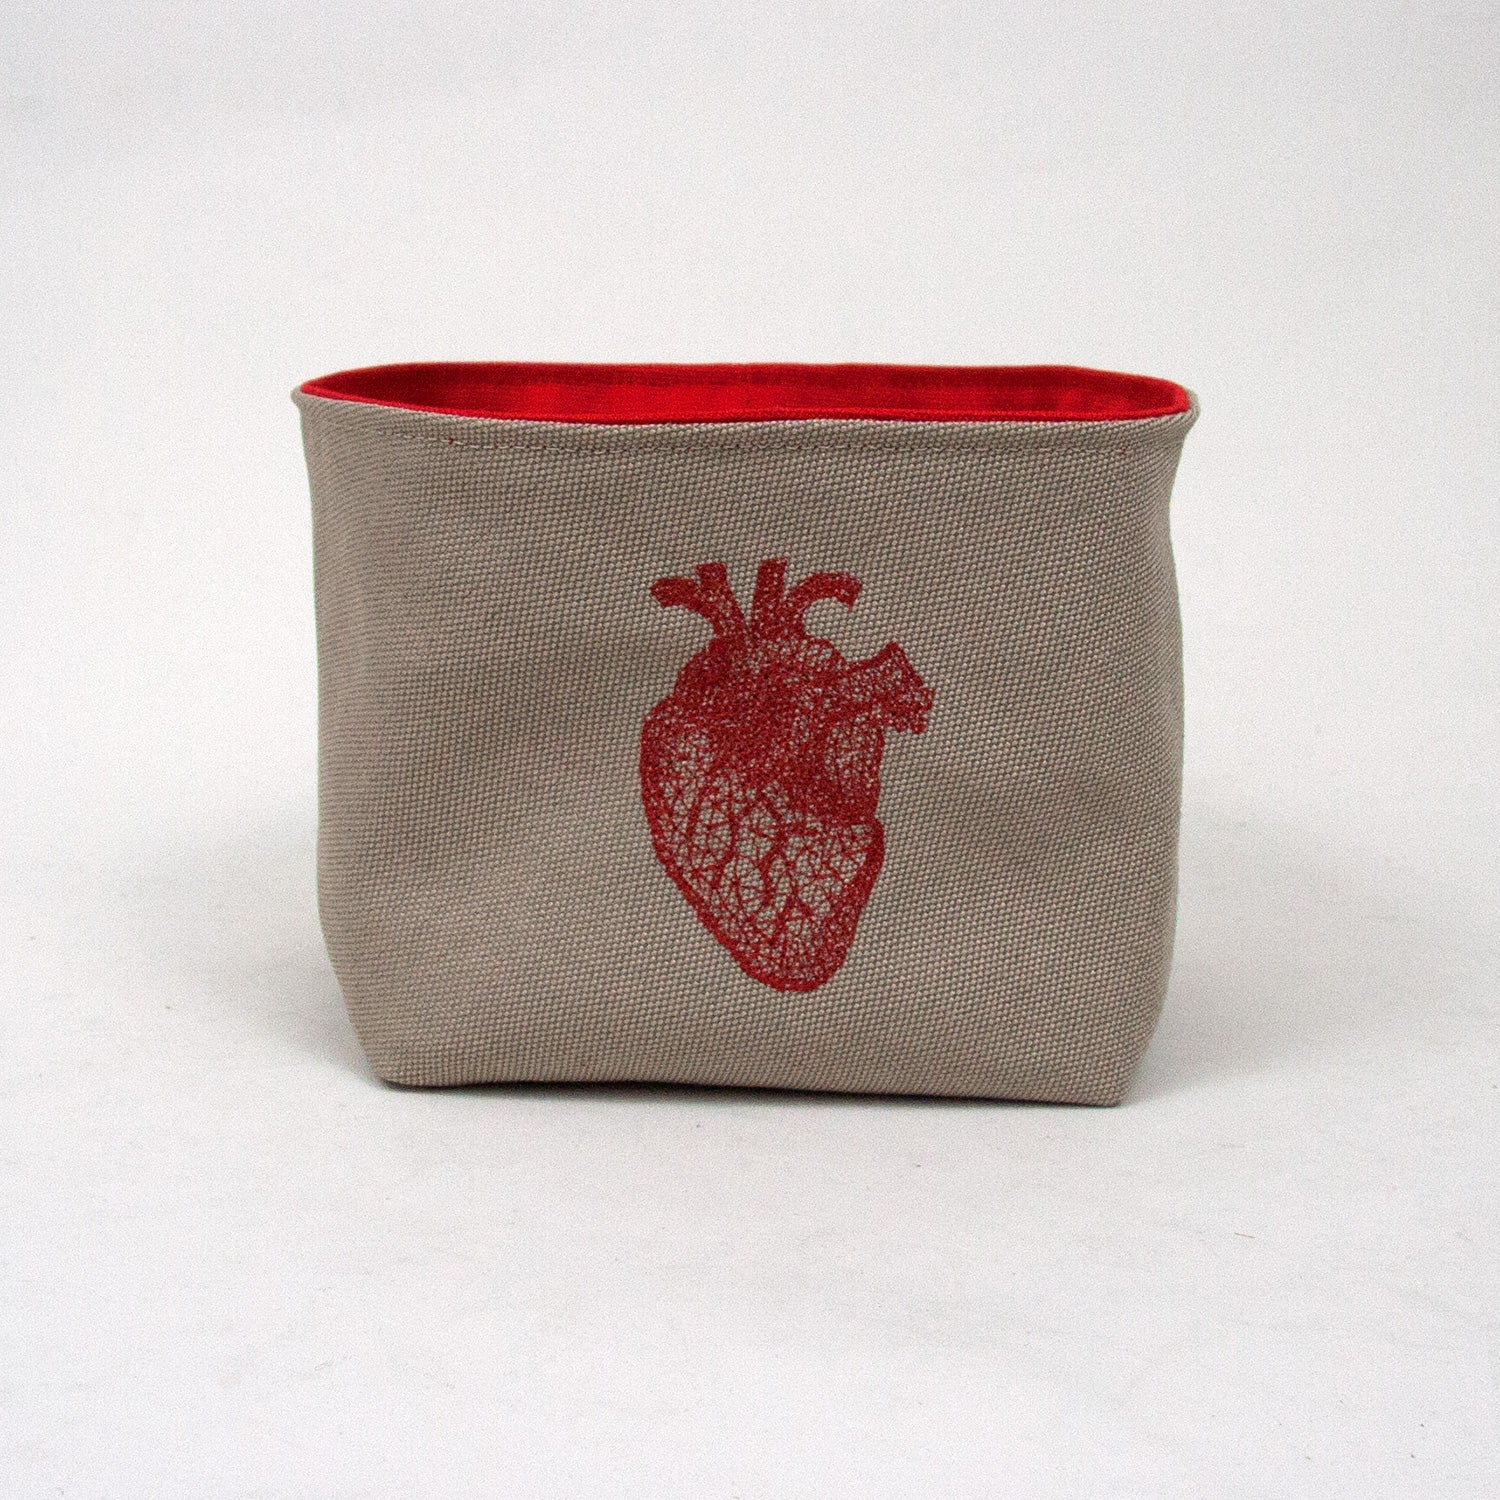 Anatomical Heart Basket